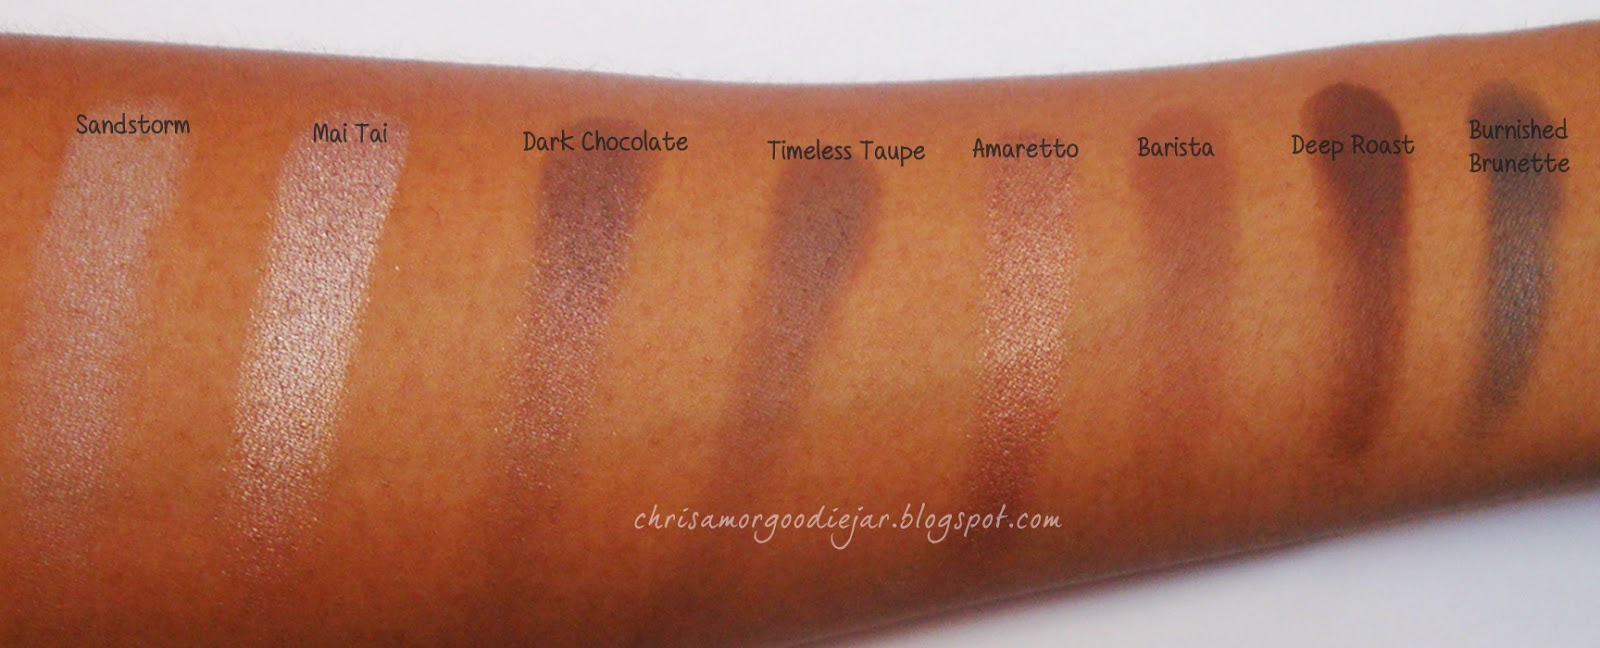 Coastal Scents Neutral Eye shadow swatches